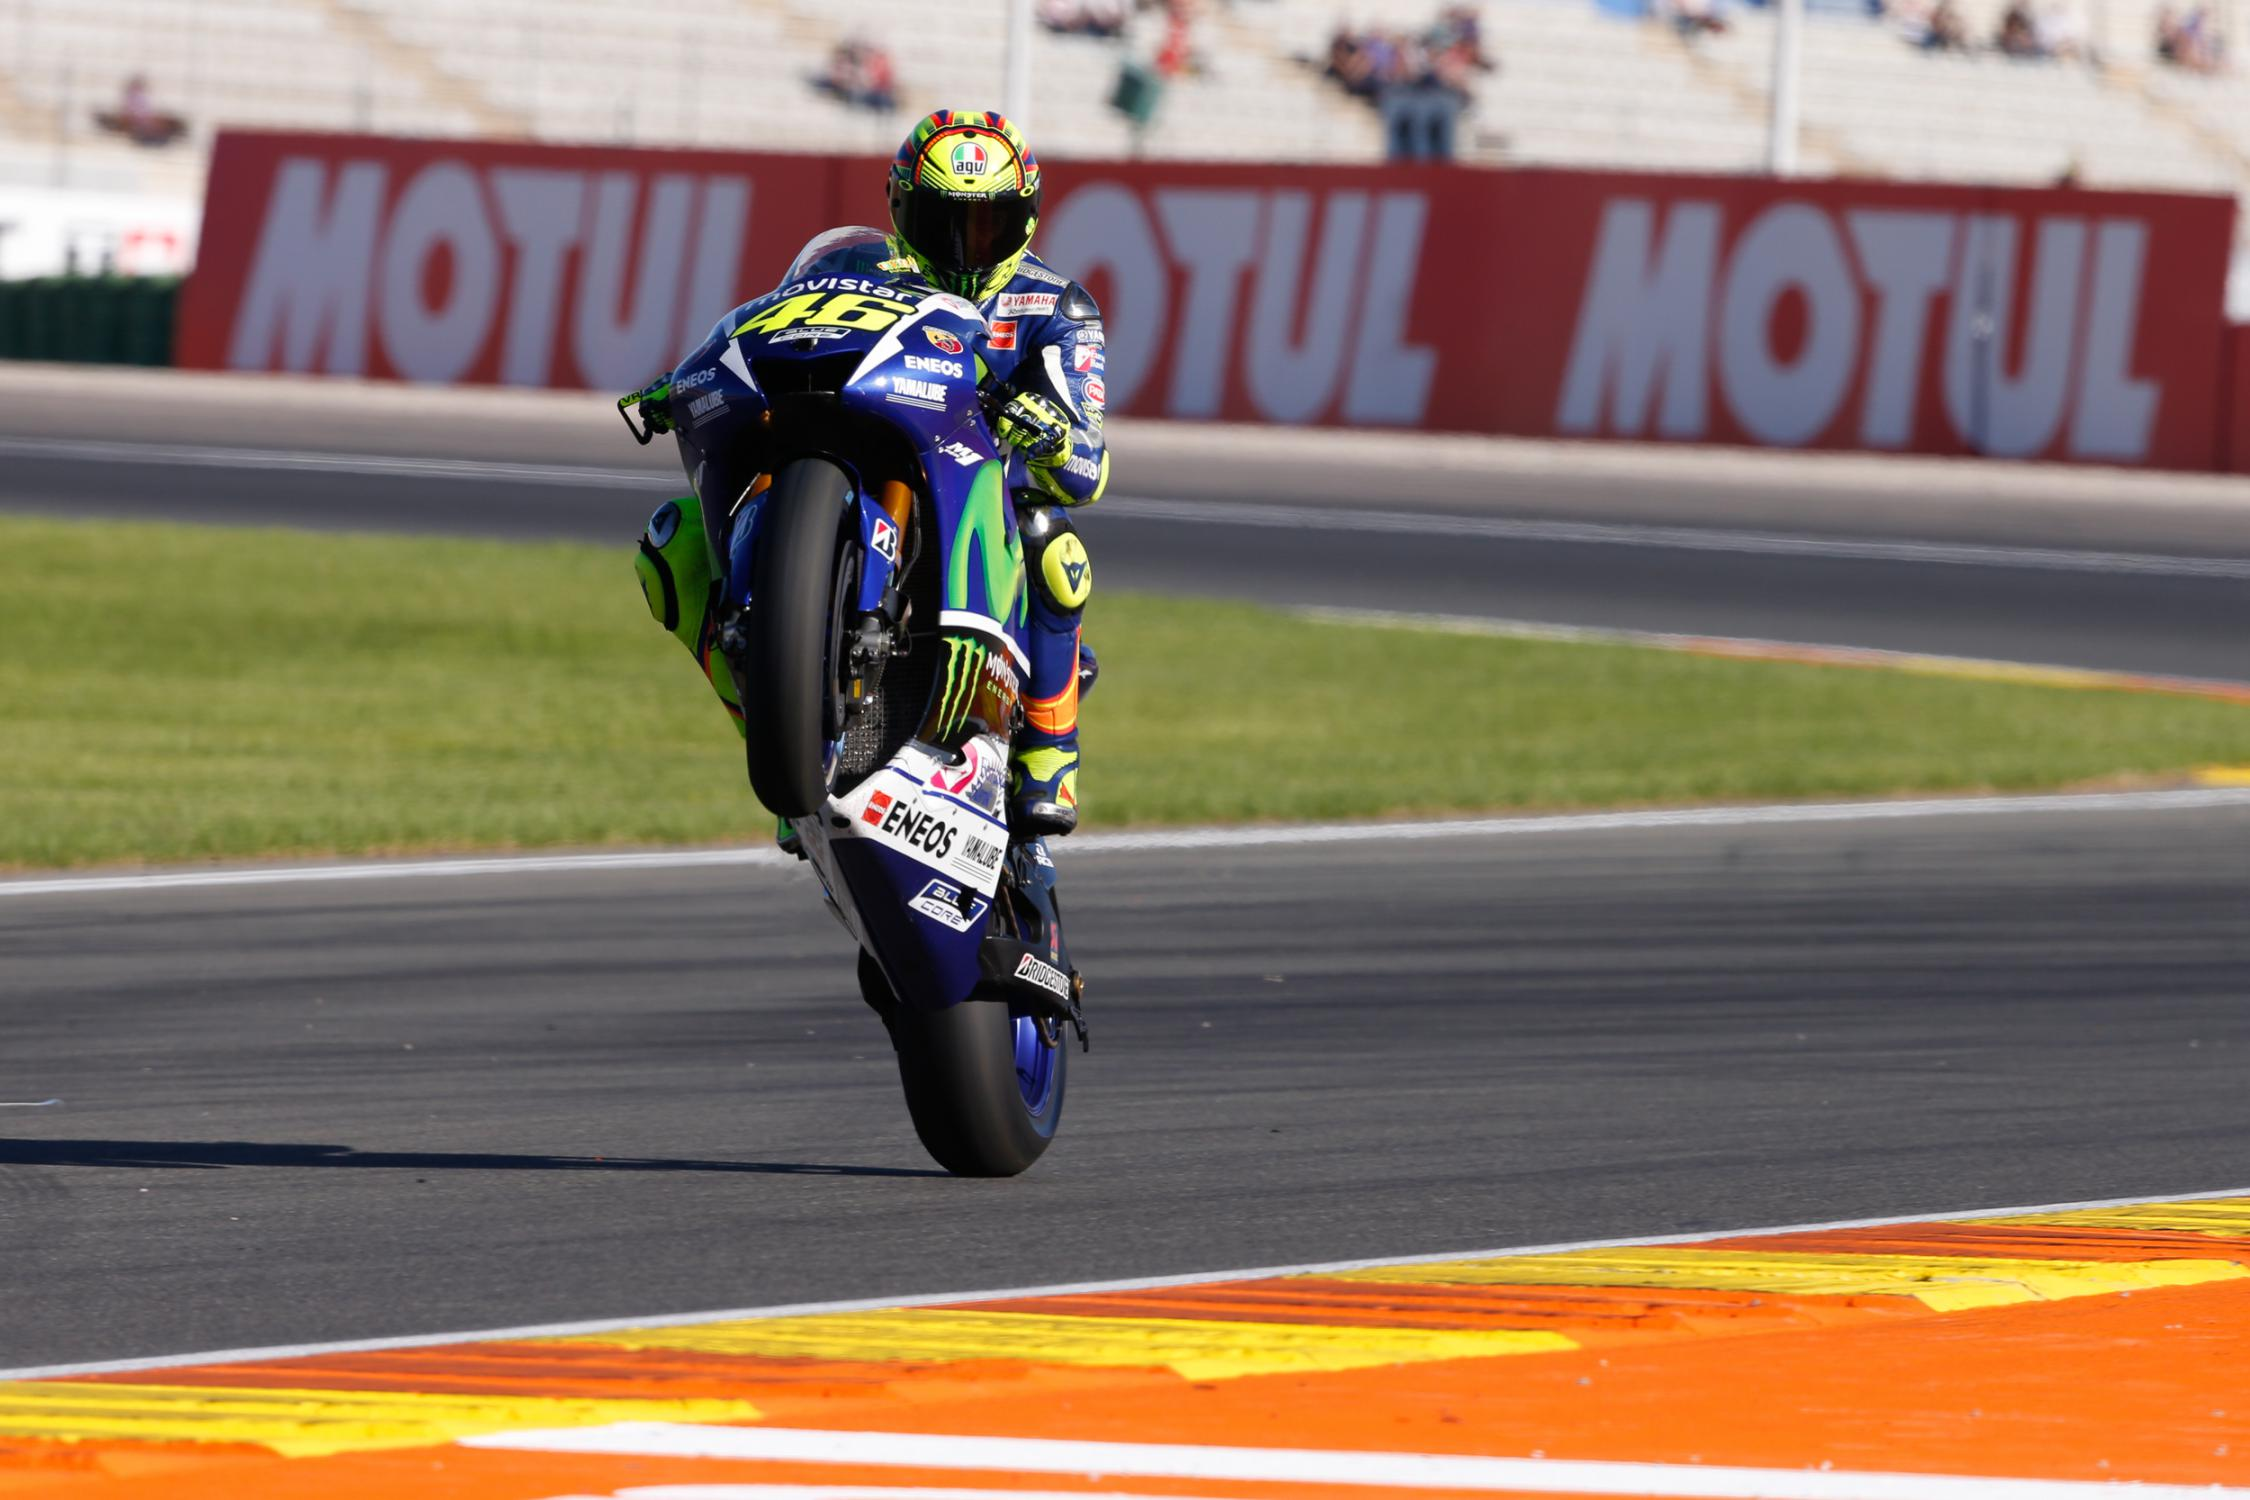 [GP] Valencia 46-rossi_gp_4106.gallery_full_top_fullscreen